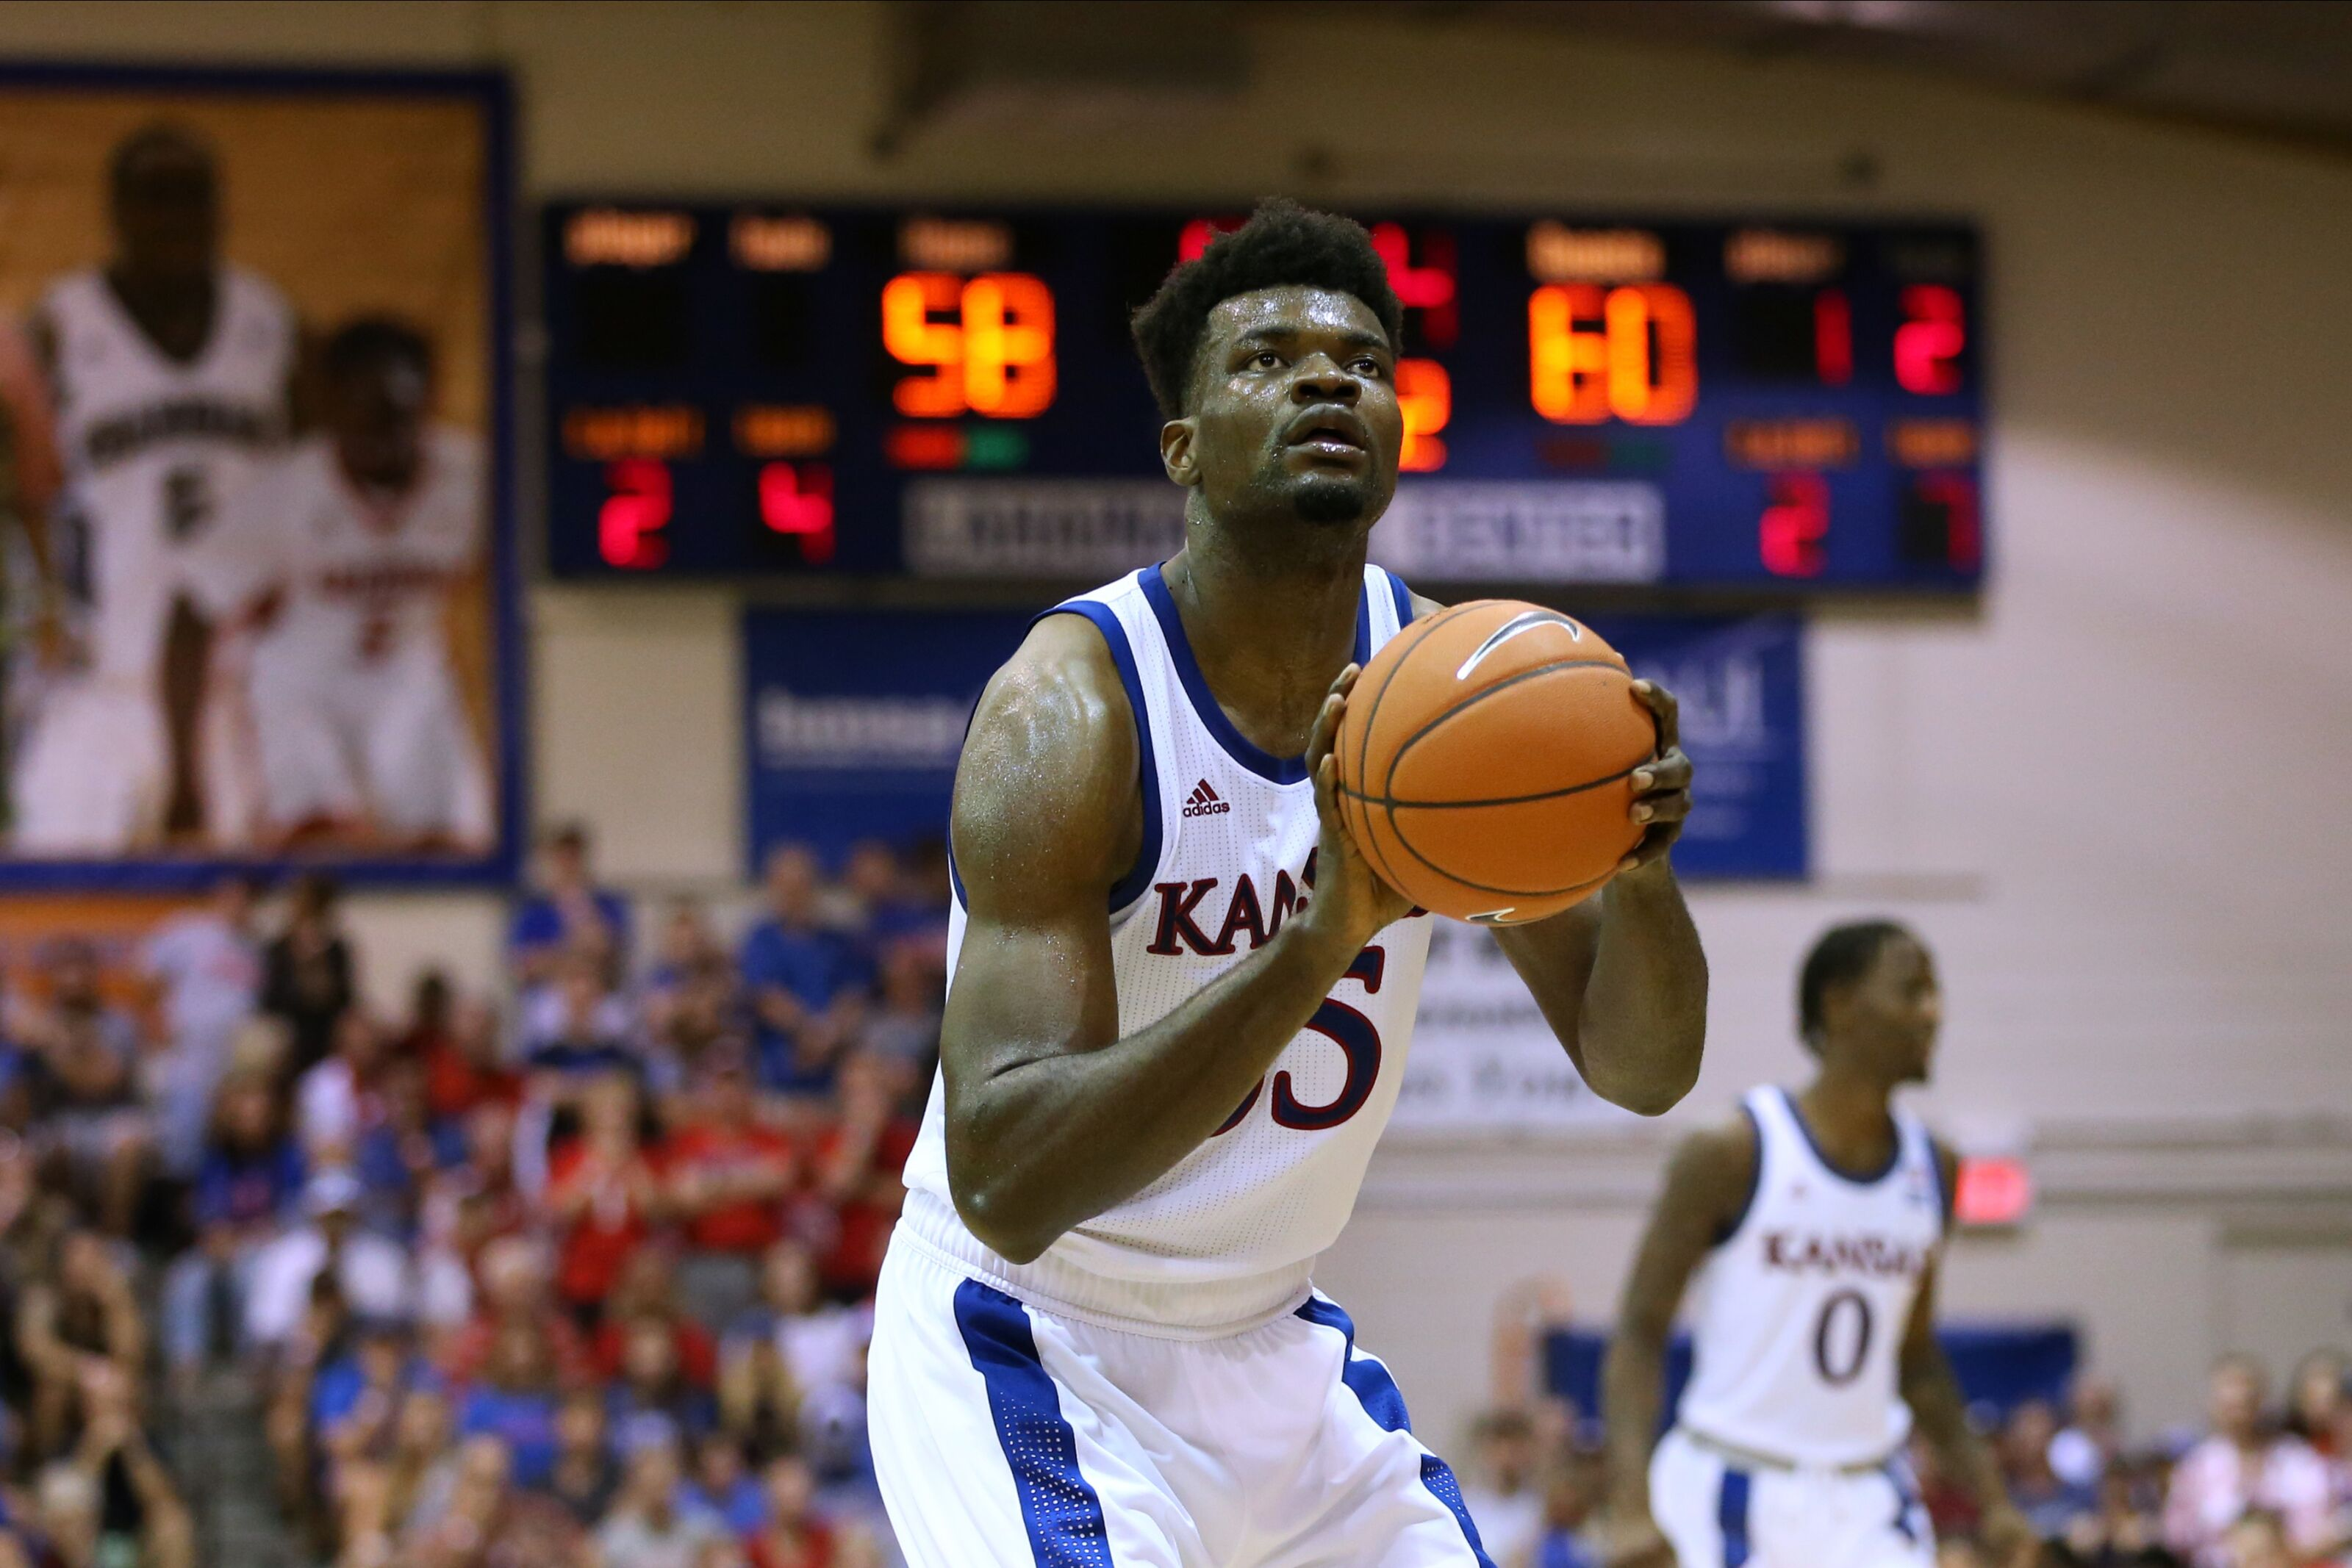 Kansas basketball: Jayhawks must solve free throw shooting woes